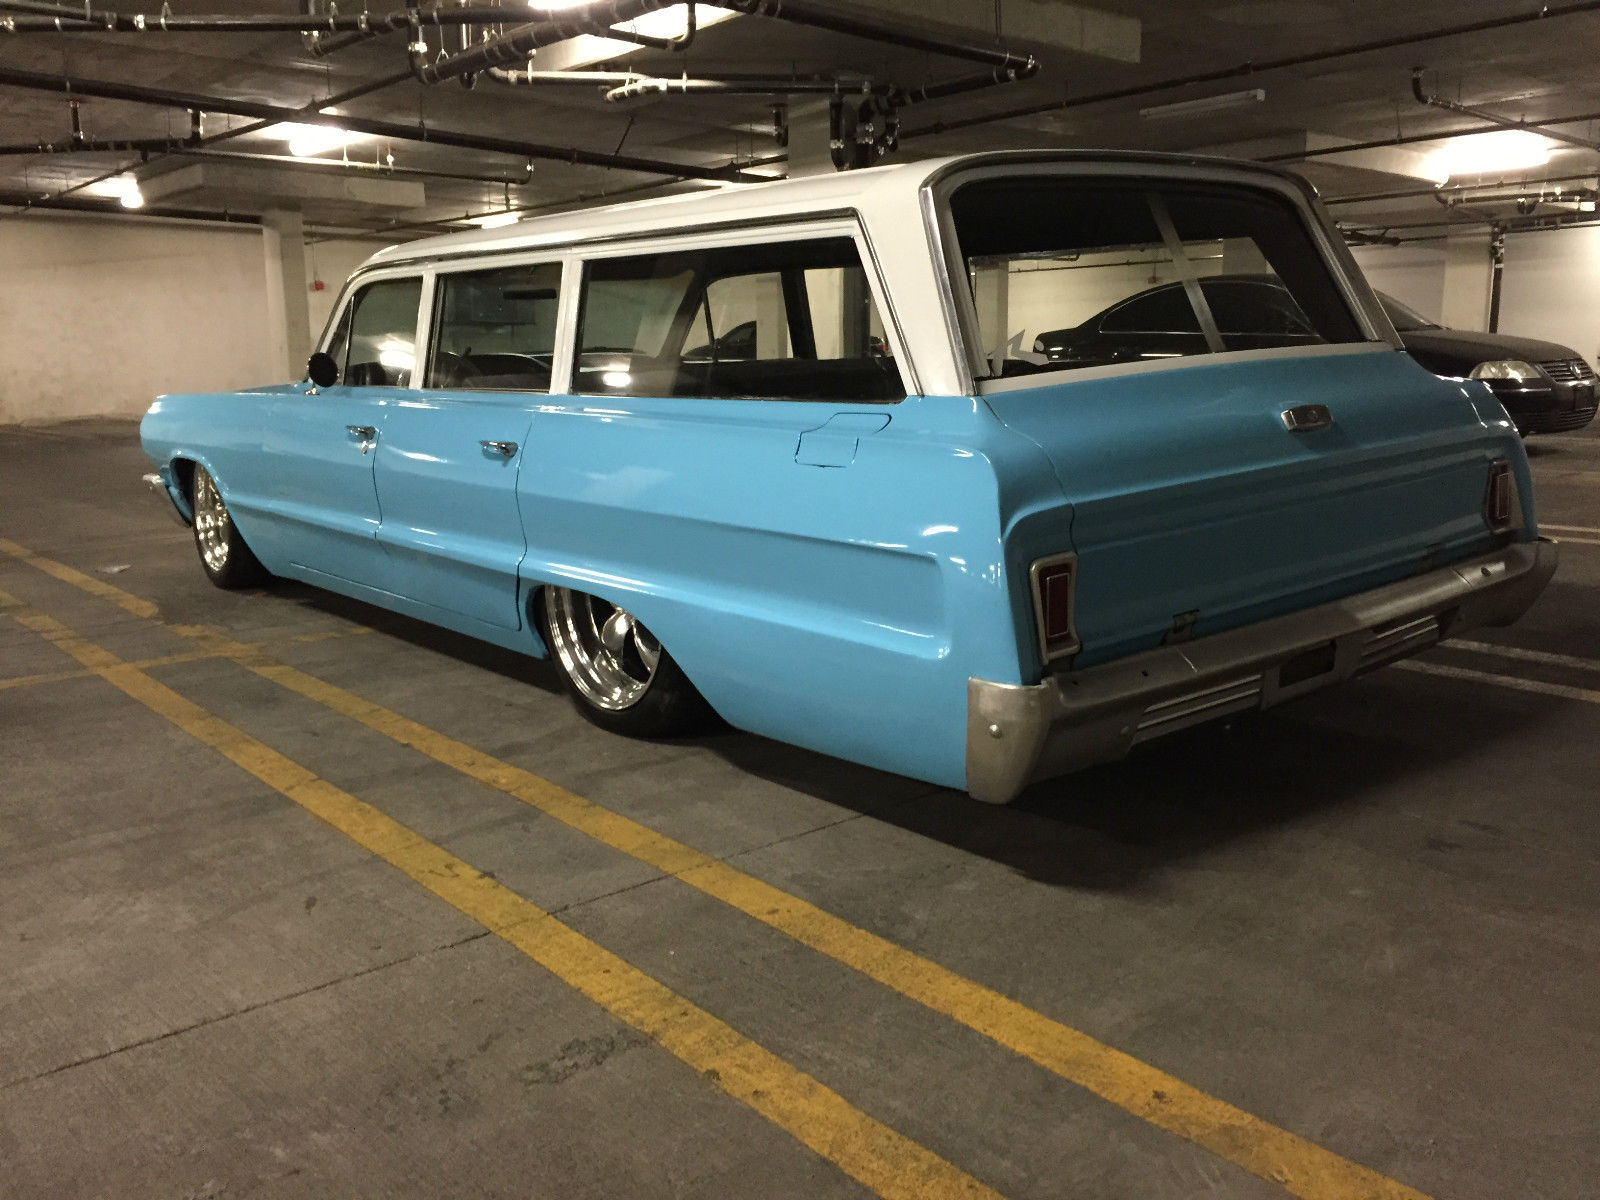 1964 chevrolet impala station wagon classic chevrolet impala 1964 for sale. Black Bedroom Furniture Sets. Home Design Ideas